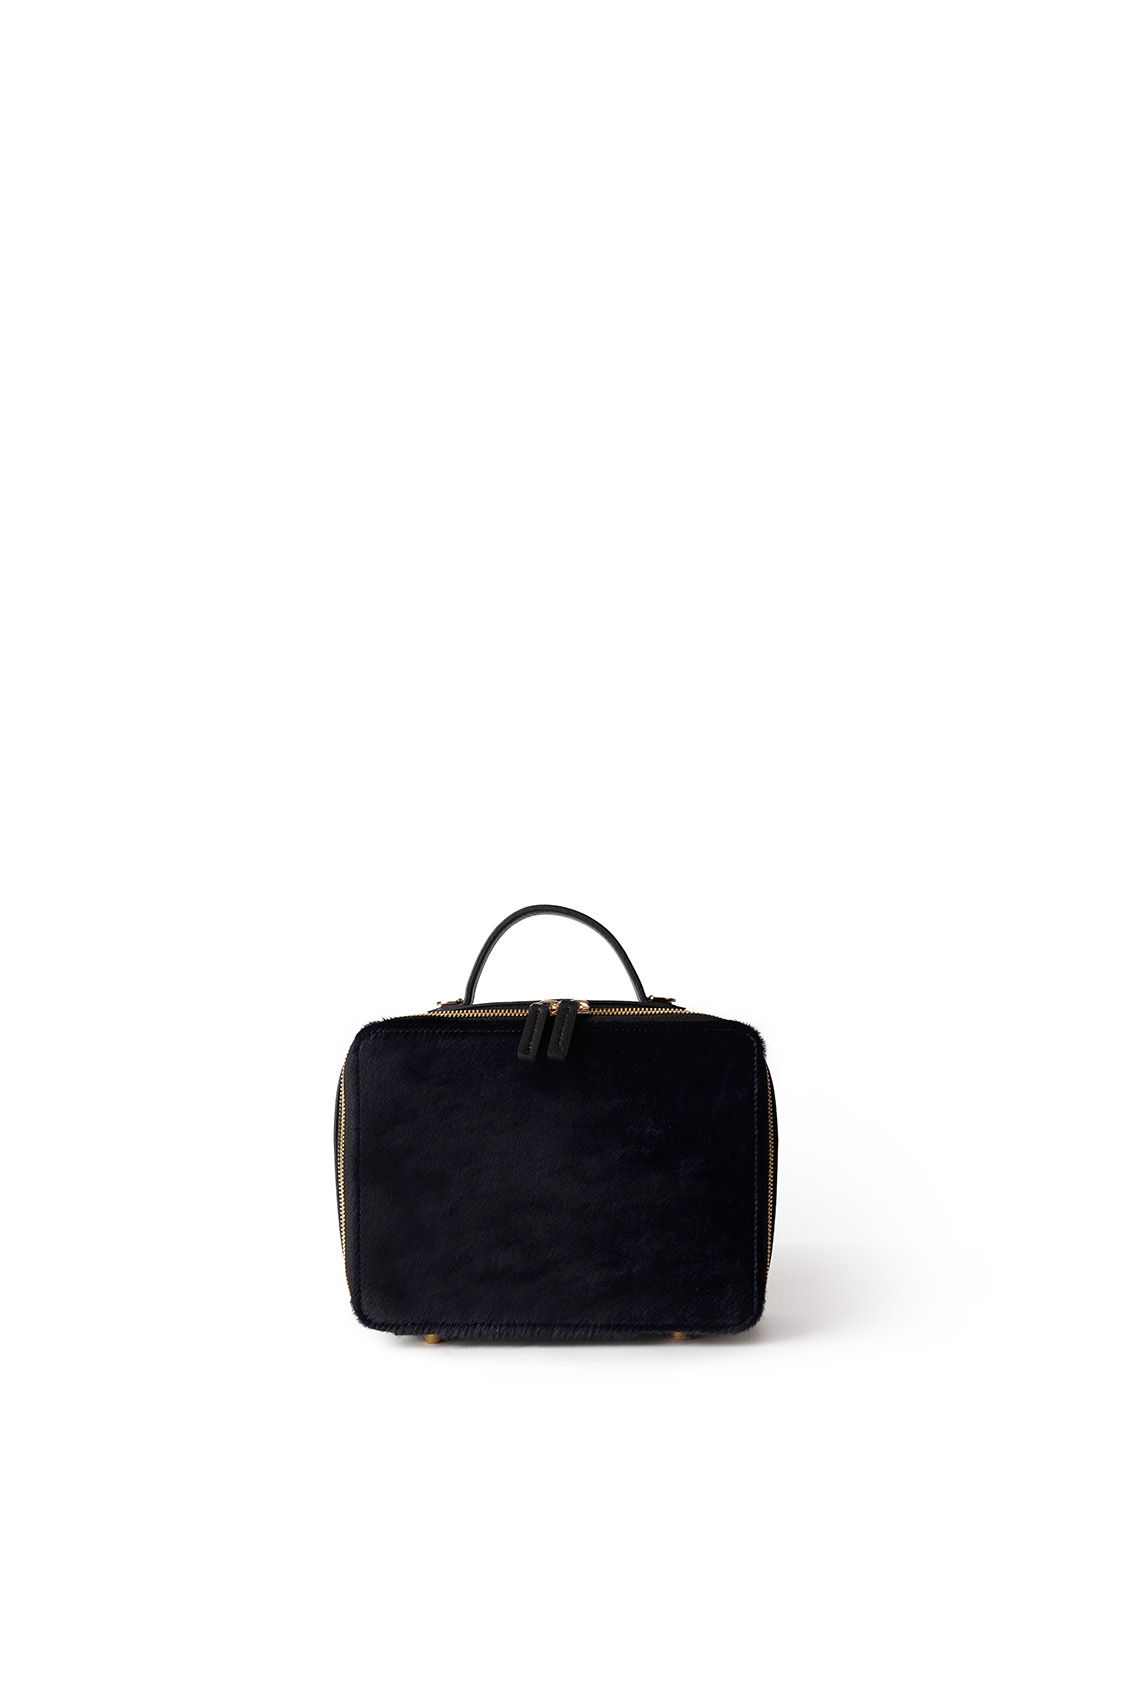 [10% OFF] Bella BB Square Bag Black